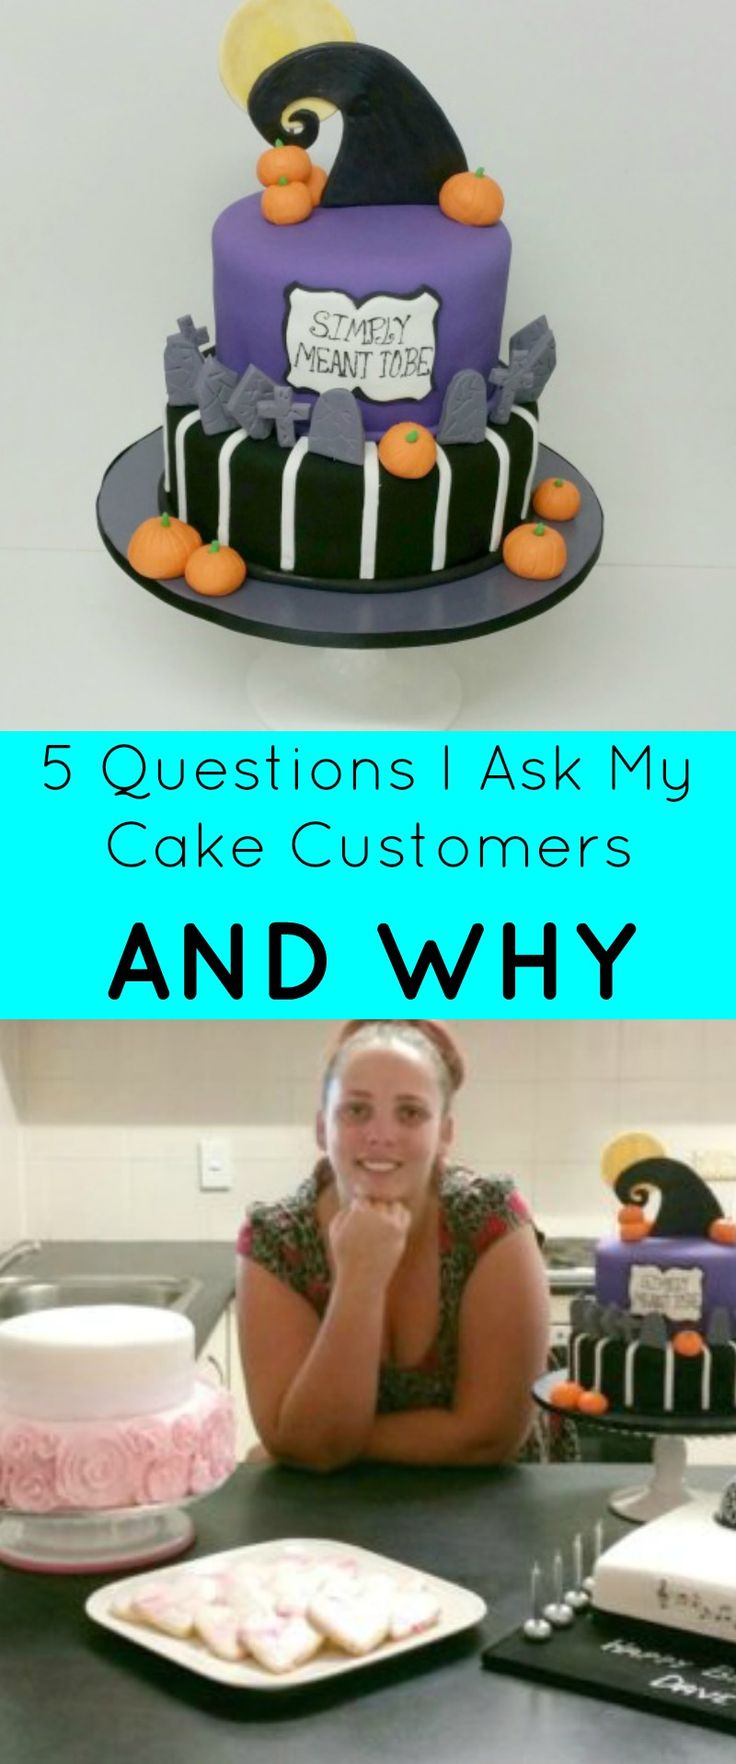 5 Questions I Ask My Cake Customers & Why | Customers contact us in many different ways to receive a quote from us cakers. The requests come in the form of Facebook, email, phone calls, text messages, knocks on the doors – you name it, we get it! | http://magnificentmouthfuls.com.au/2017/04/13/cake-customer-questions/